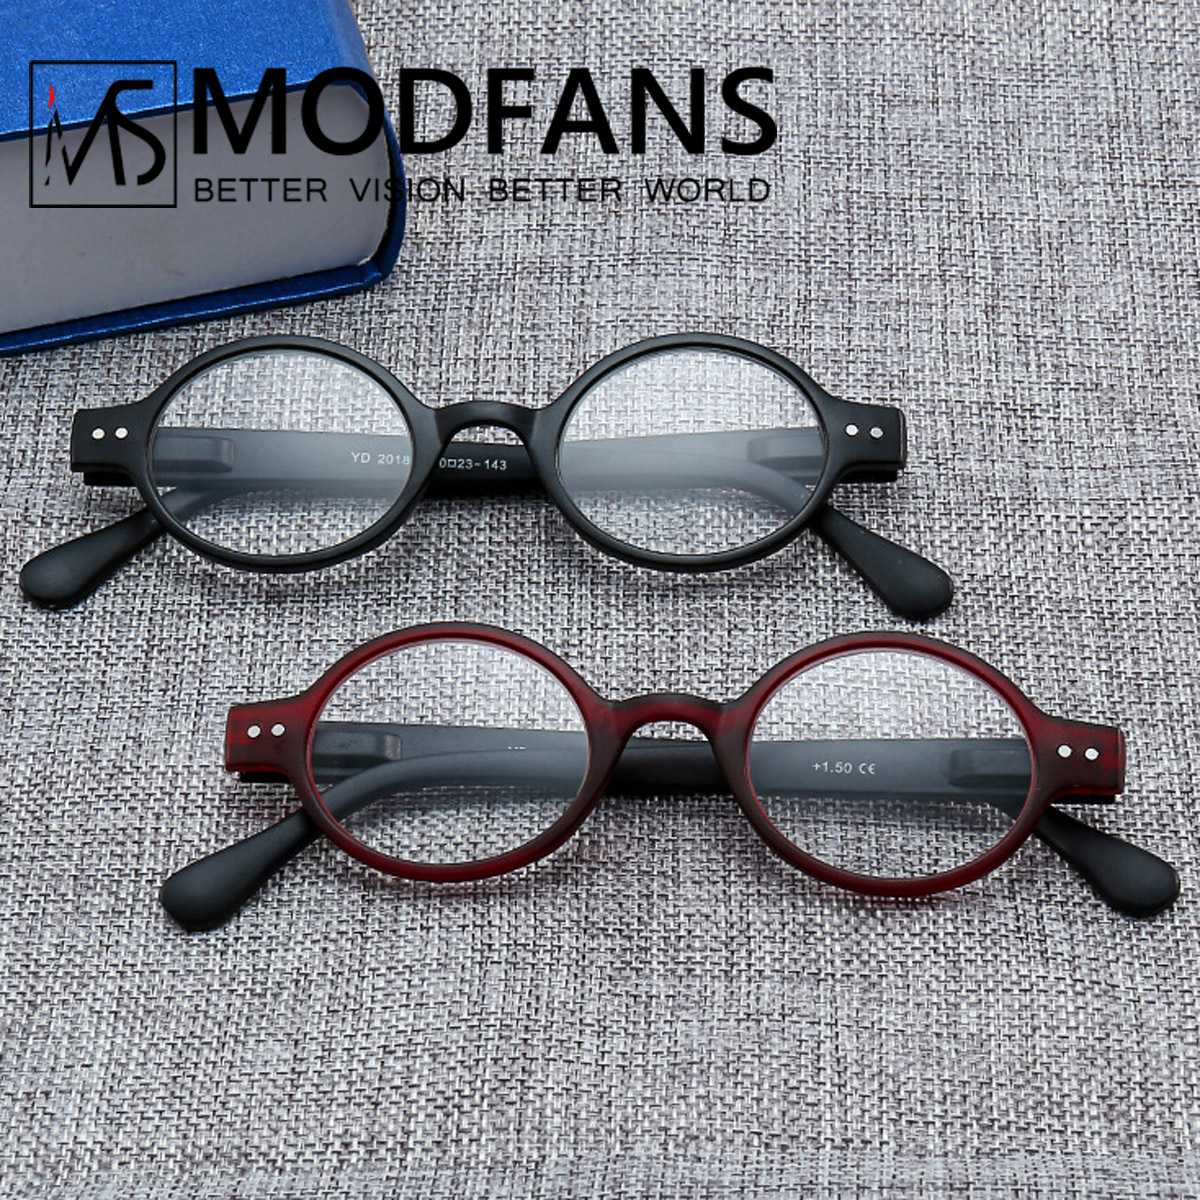 153d9adce4c8f ღ Ƹ̵̡Ӝ̵̨̄Ʒ ღ Insightful Reviews for reading glasses men 3 and get ...